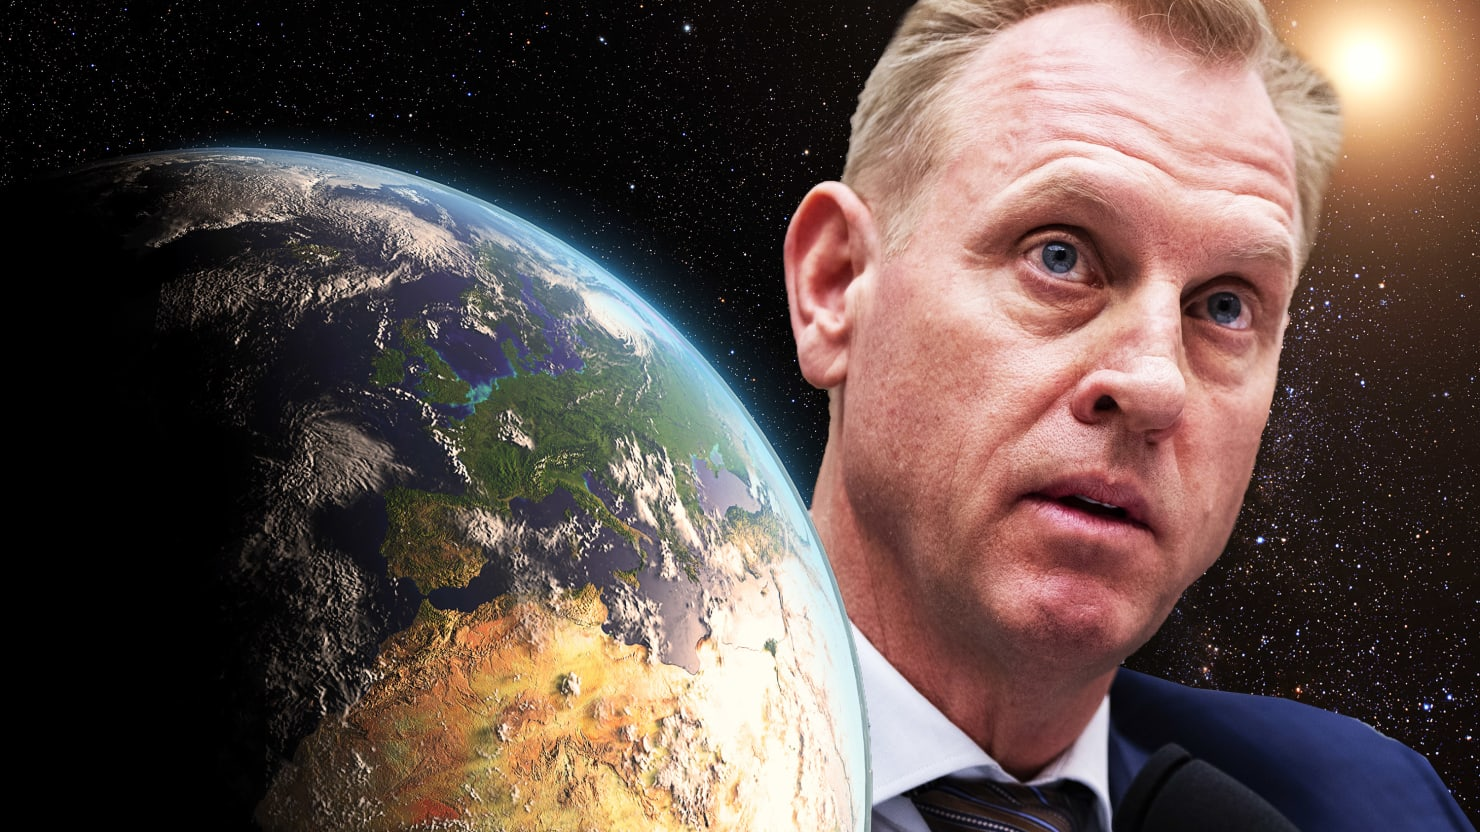 illustration of earth on left side and acting defense secretary patrick shanahan on right side with black space littered with stars background behind them space force donald trump wilbur ross 3 trillion economic economy war